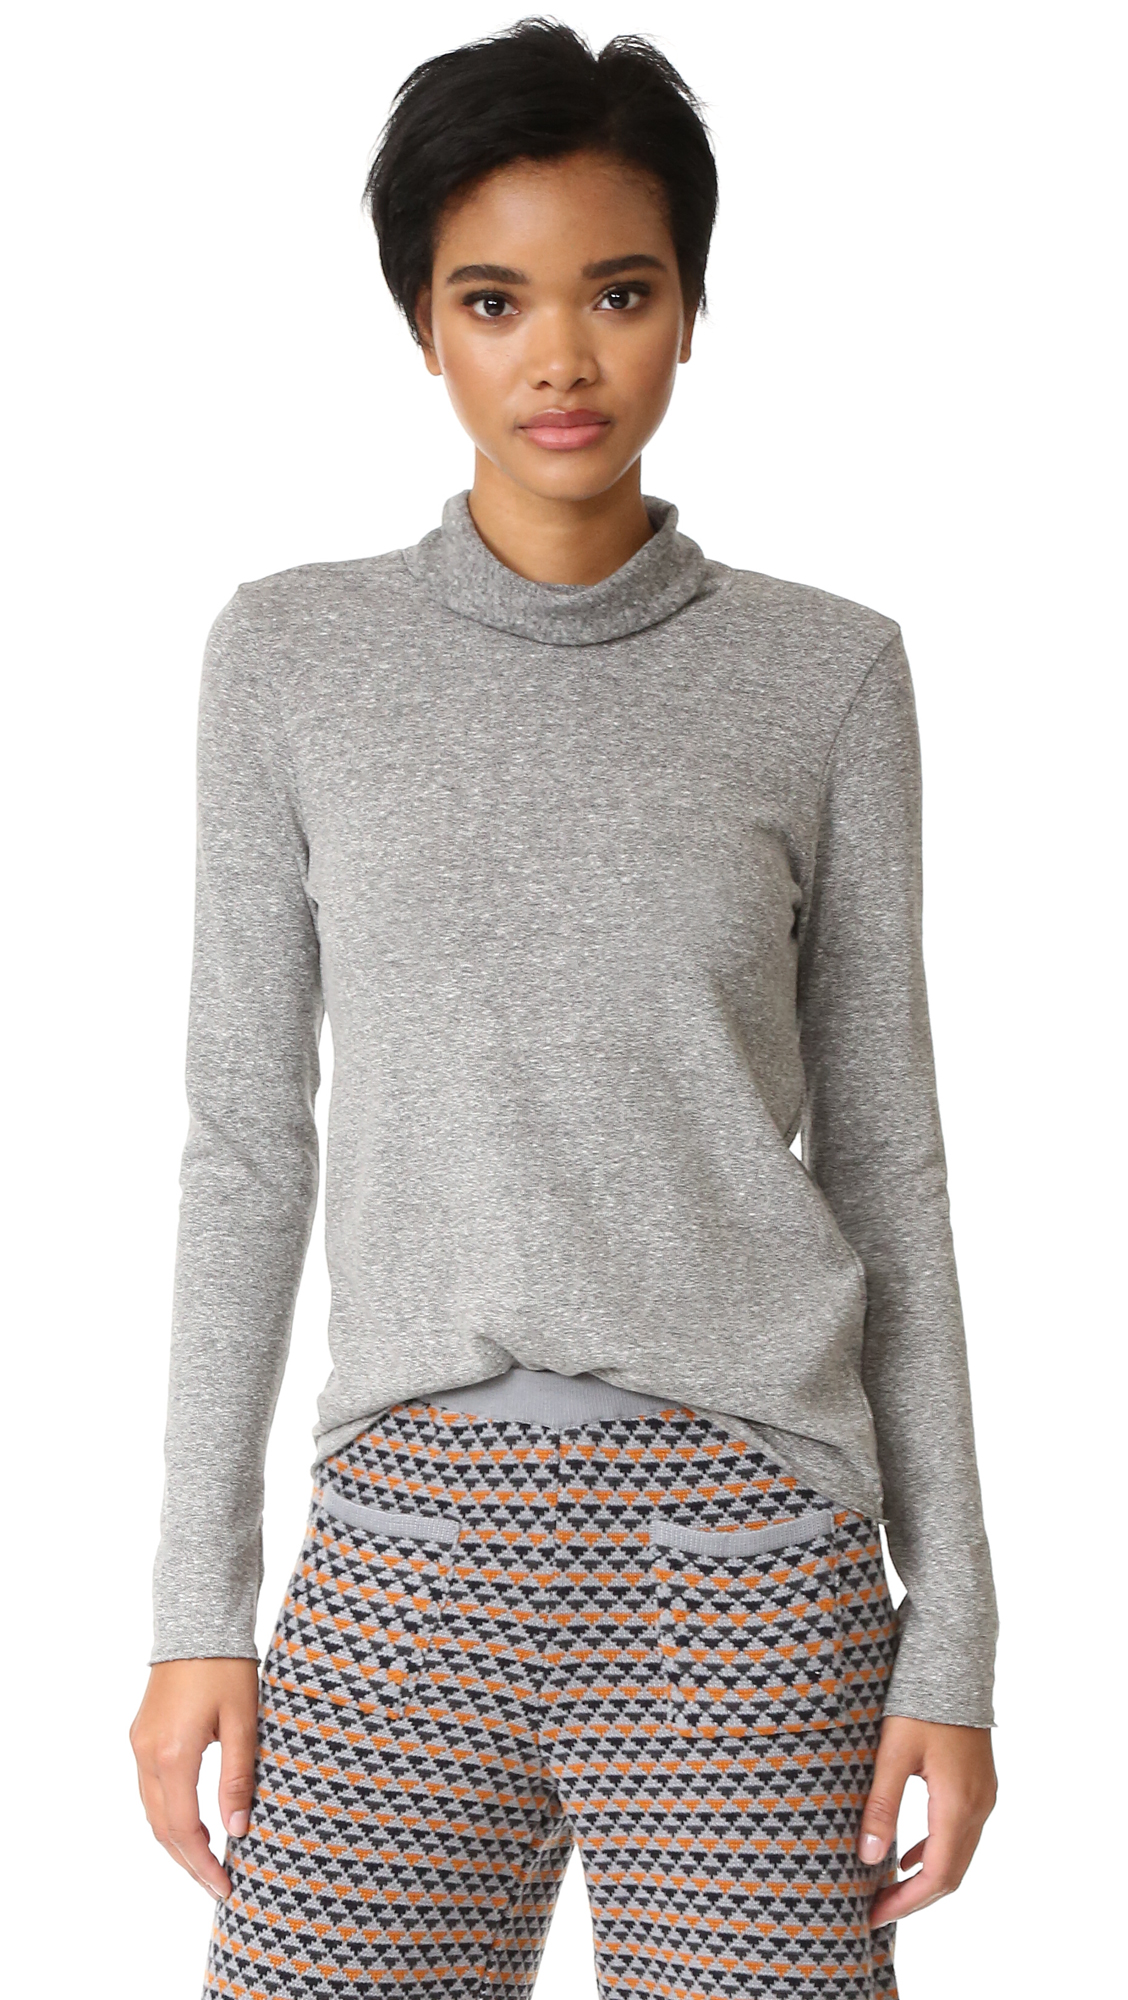 Lanston Turtleneck Top With Thumbholes - Heather Grey at Shopbop